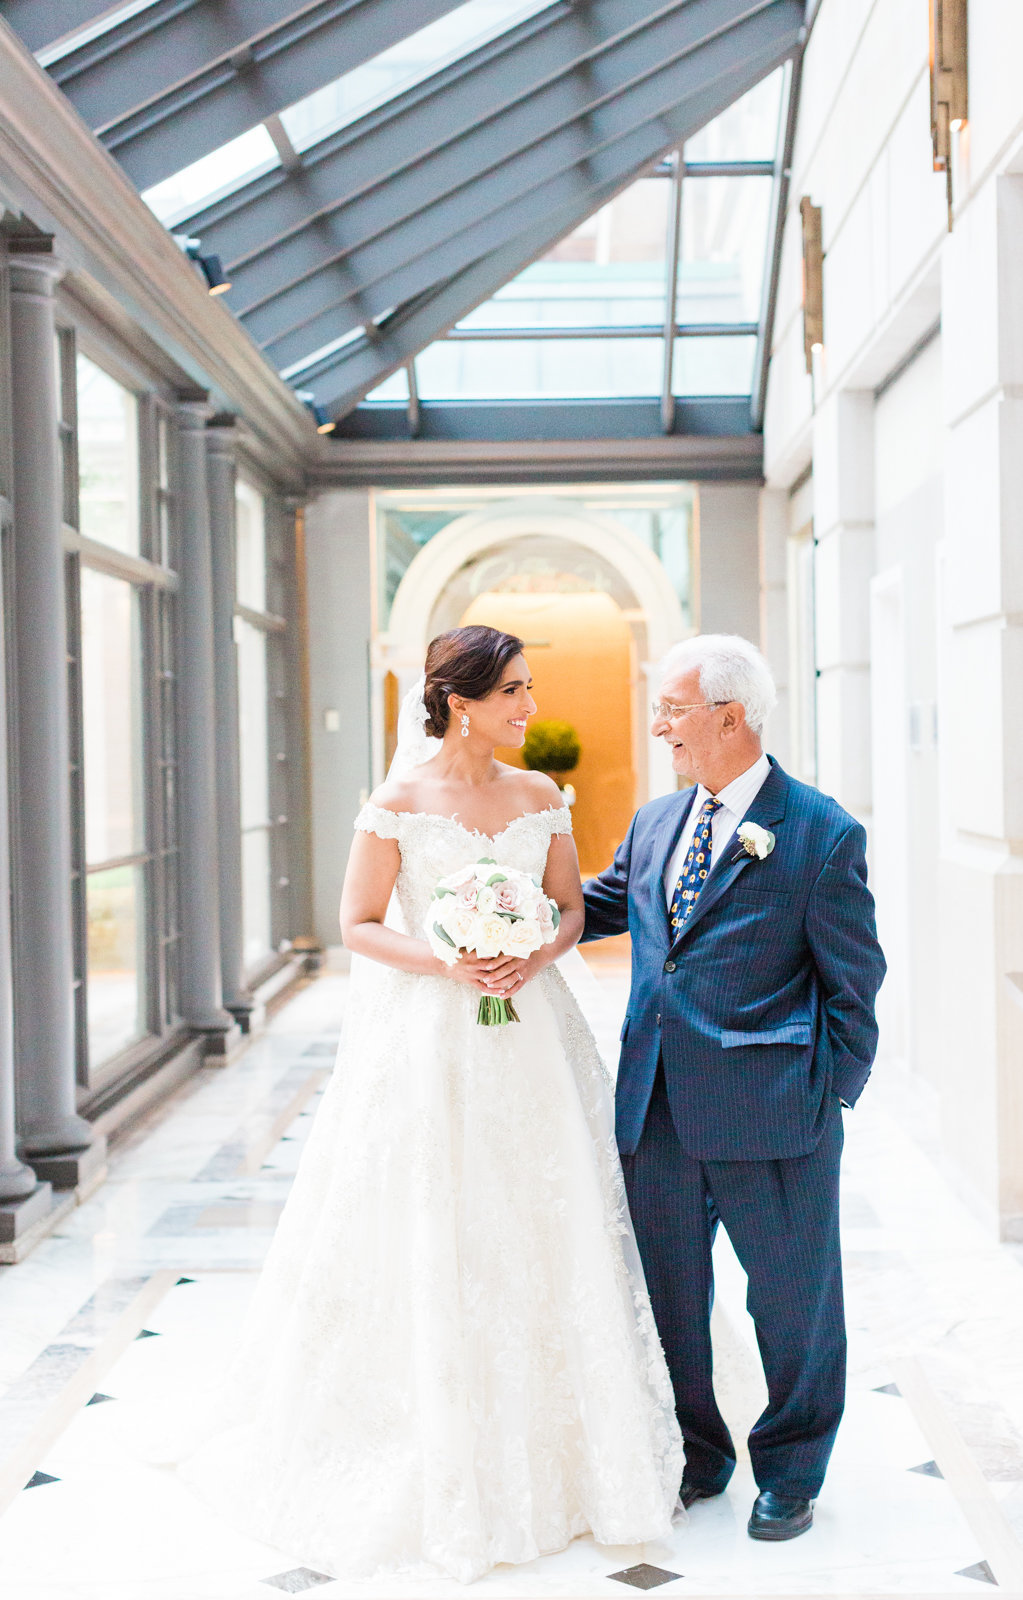 Fairmont Hotel Washington DC wedding photography